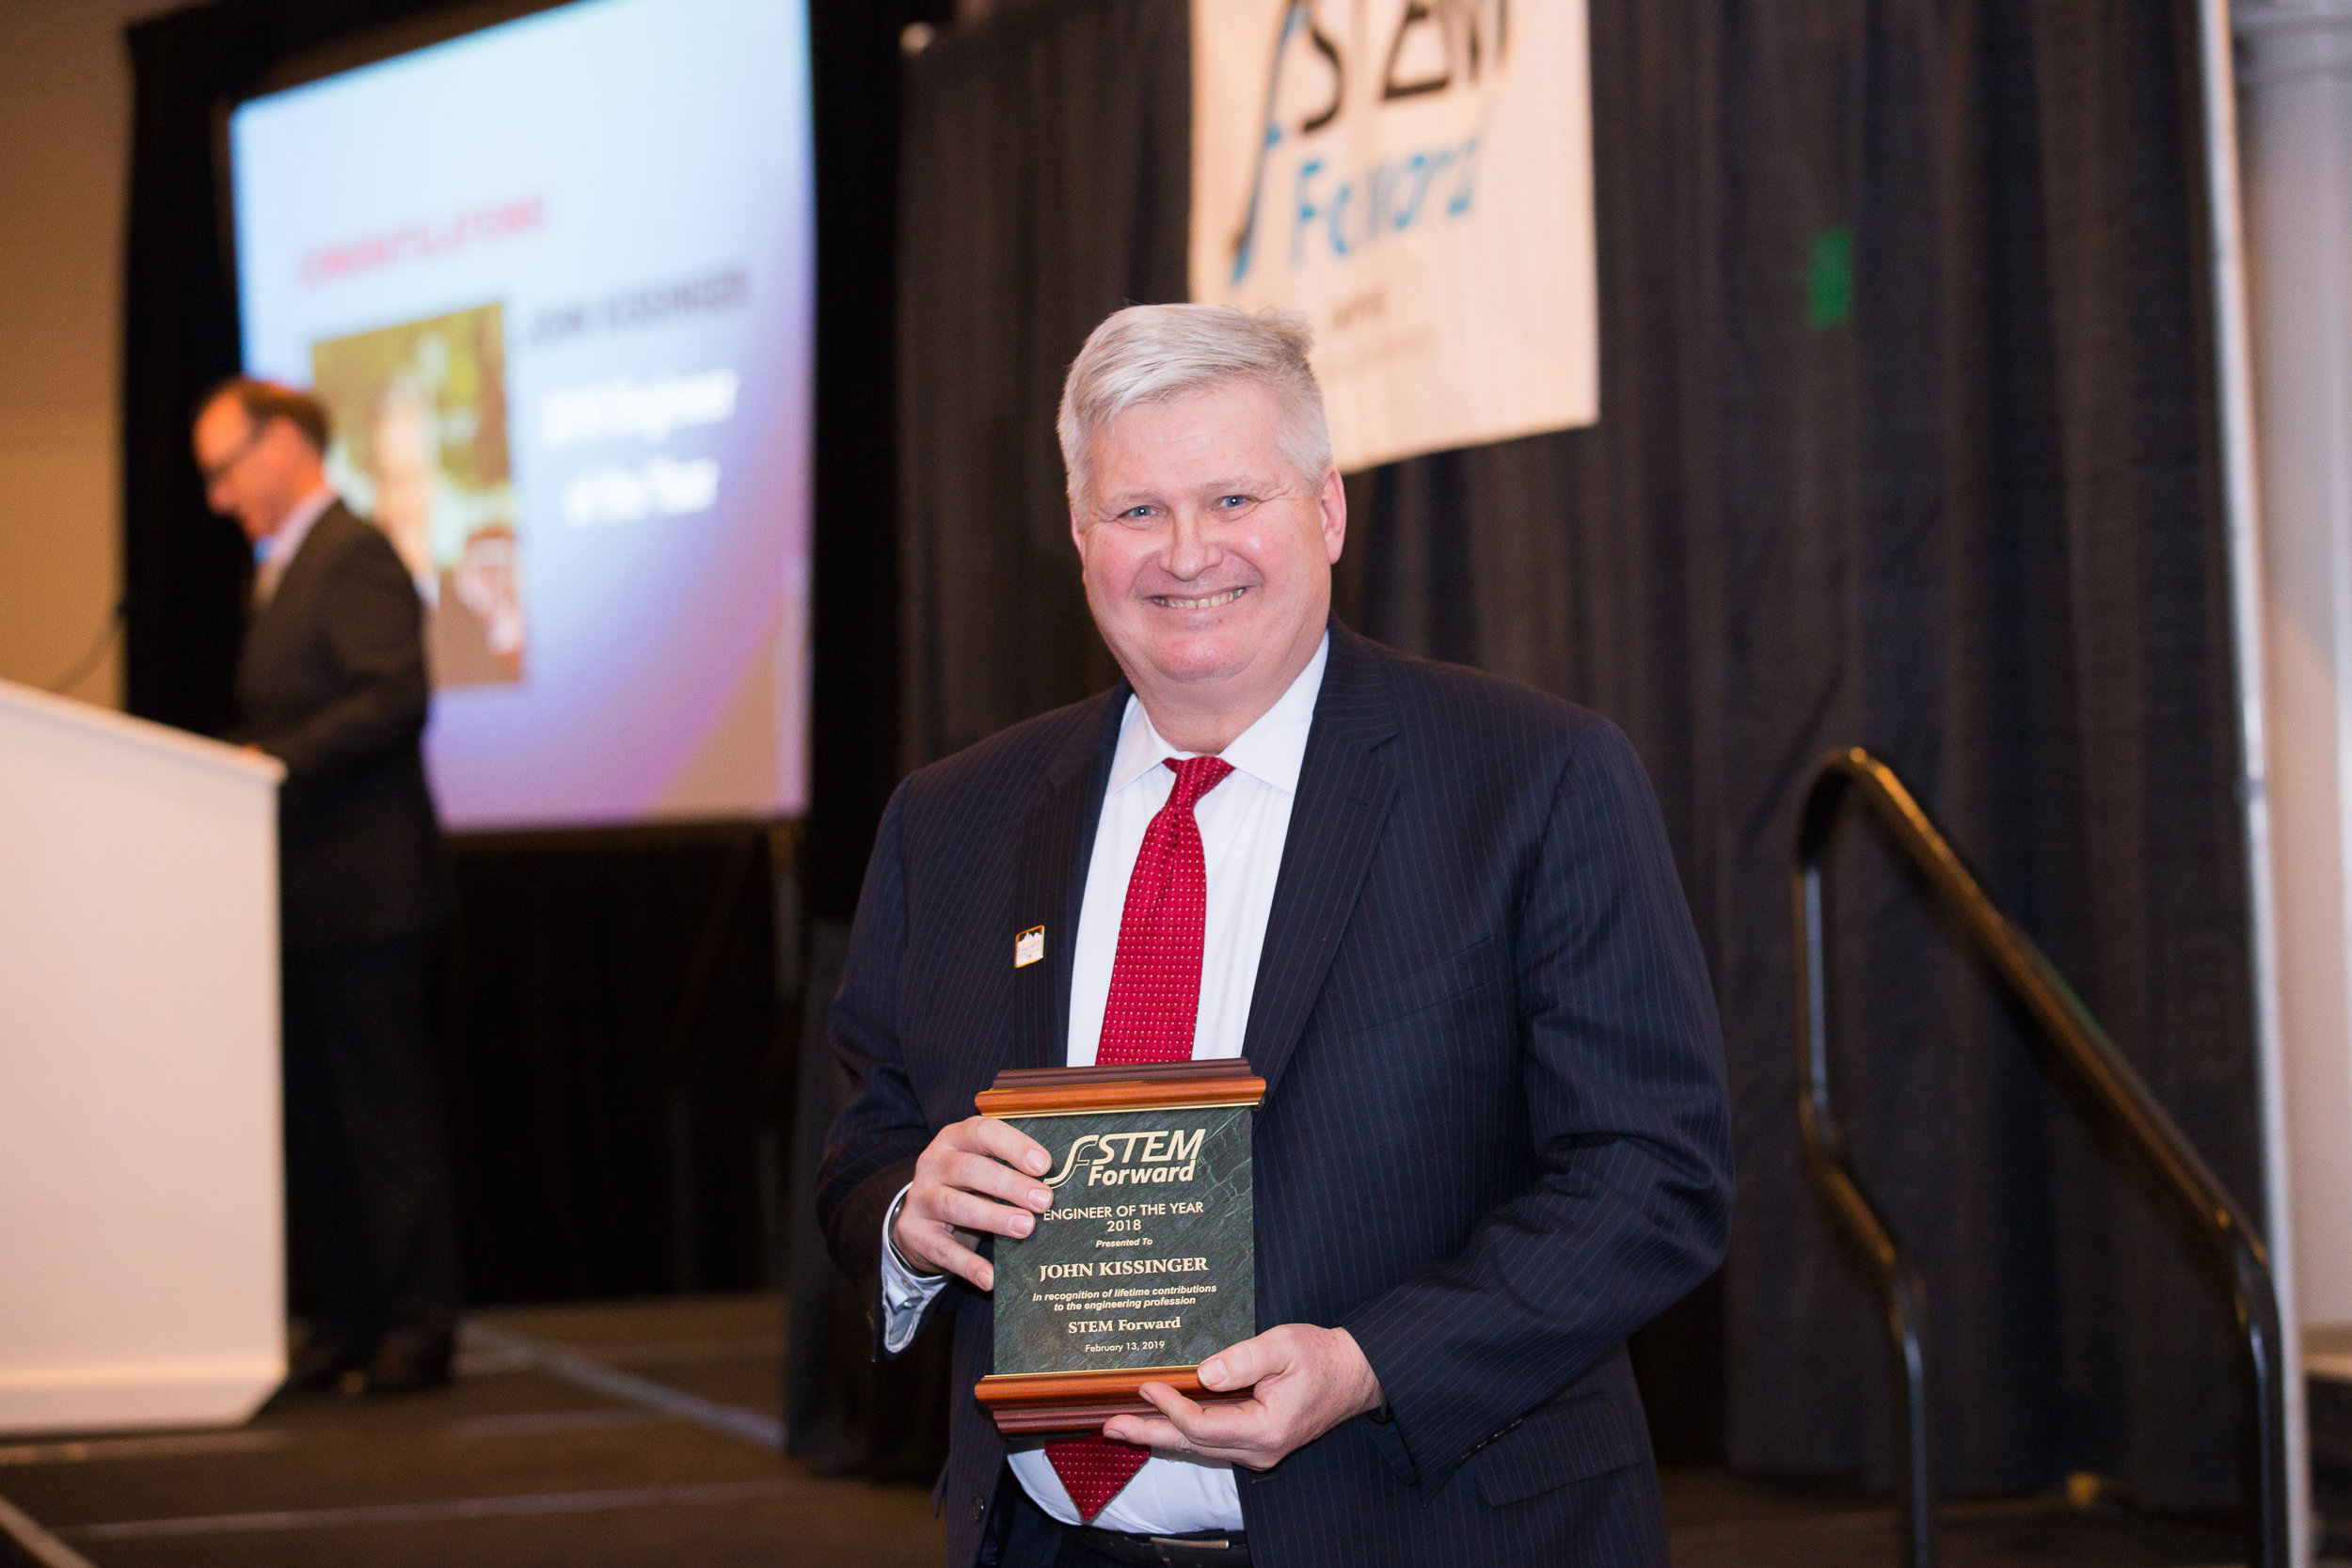 John Kissinger named 2018 Engineer of the Year - Click here to read his full biography.